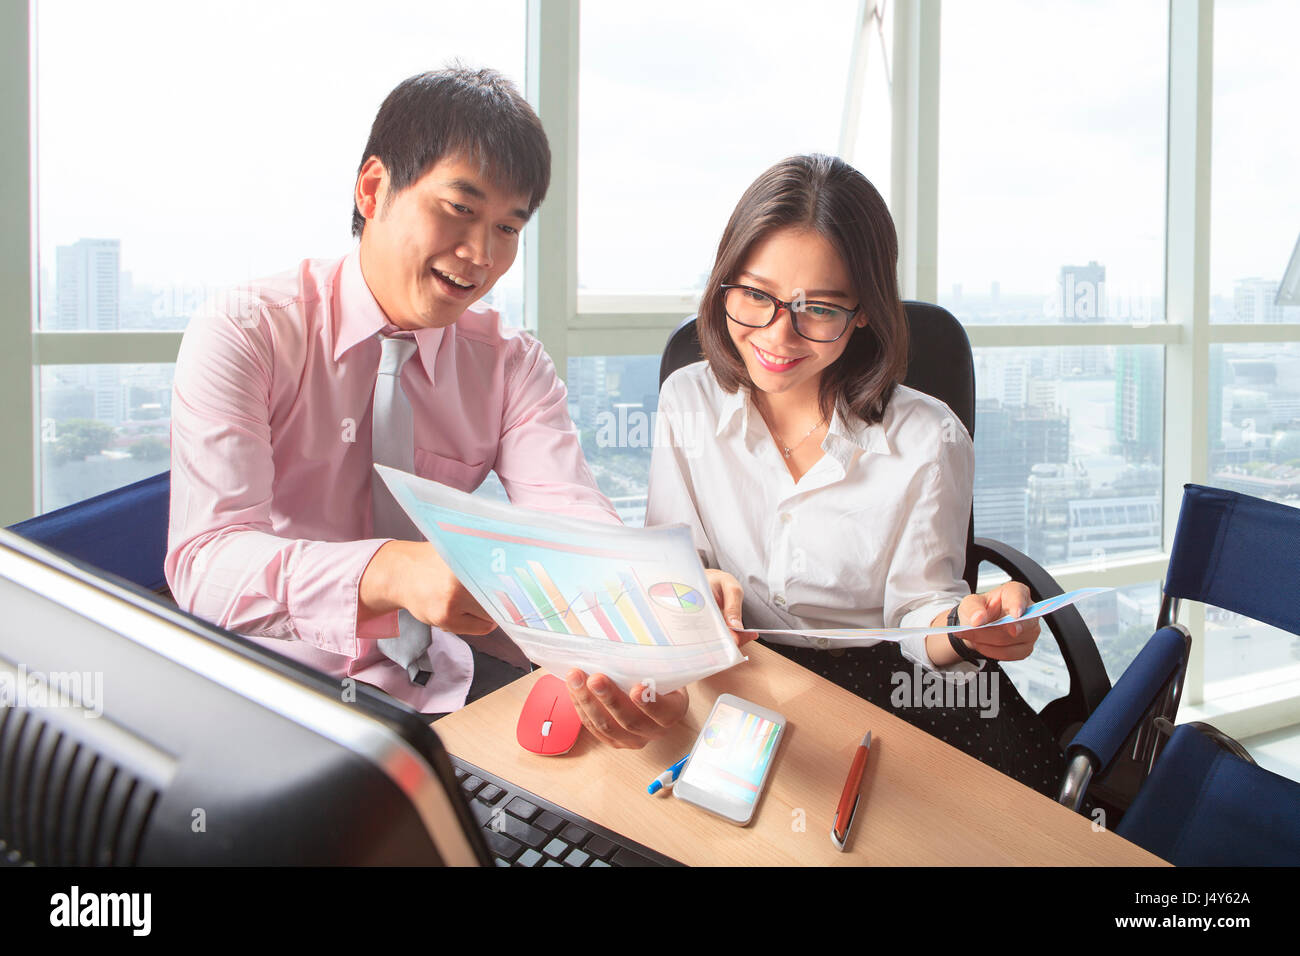 younger man and woman meeting in office working table scene for people business lifestyle - Stock Image